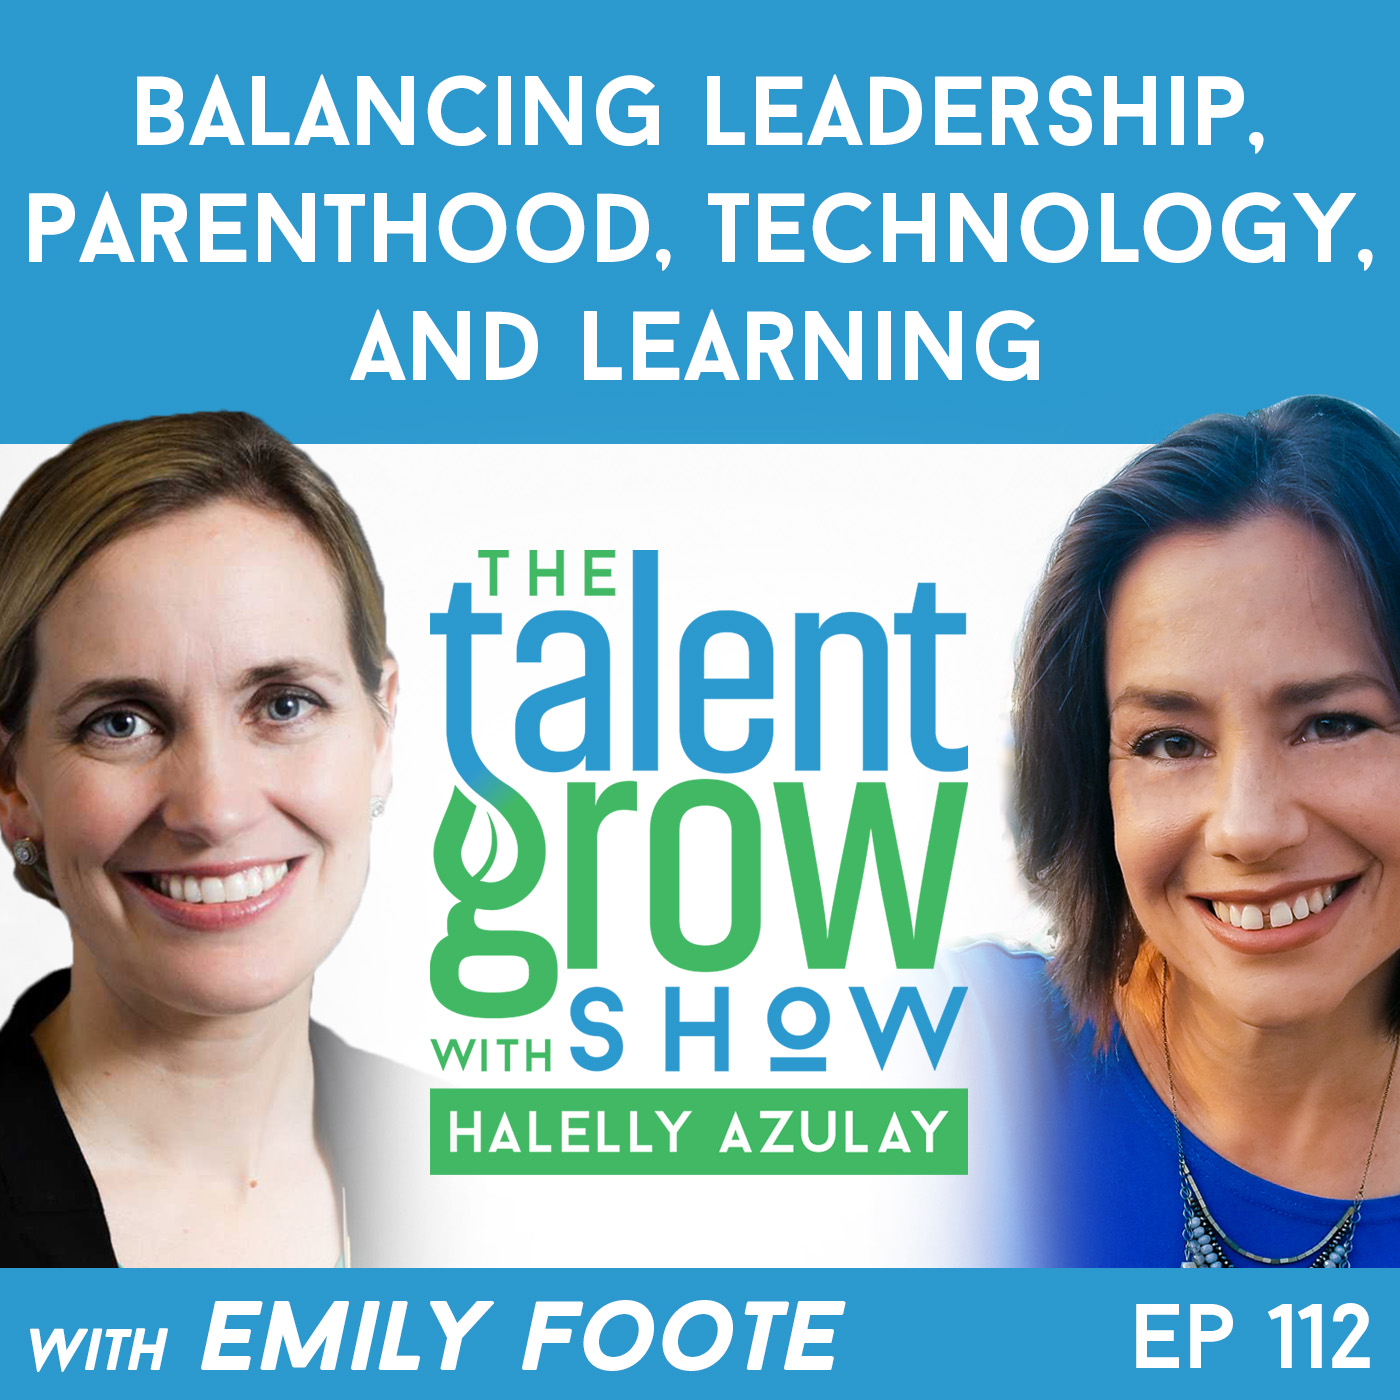 112: Balancing Leadership, Parenthood, Technology, and Learning with Entrepreneur and Executive Emily Foote